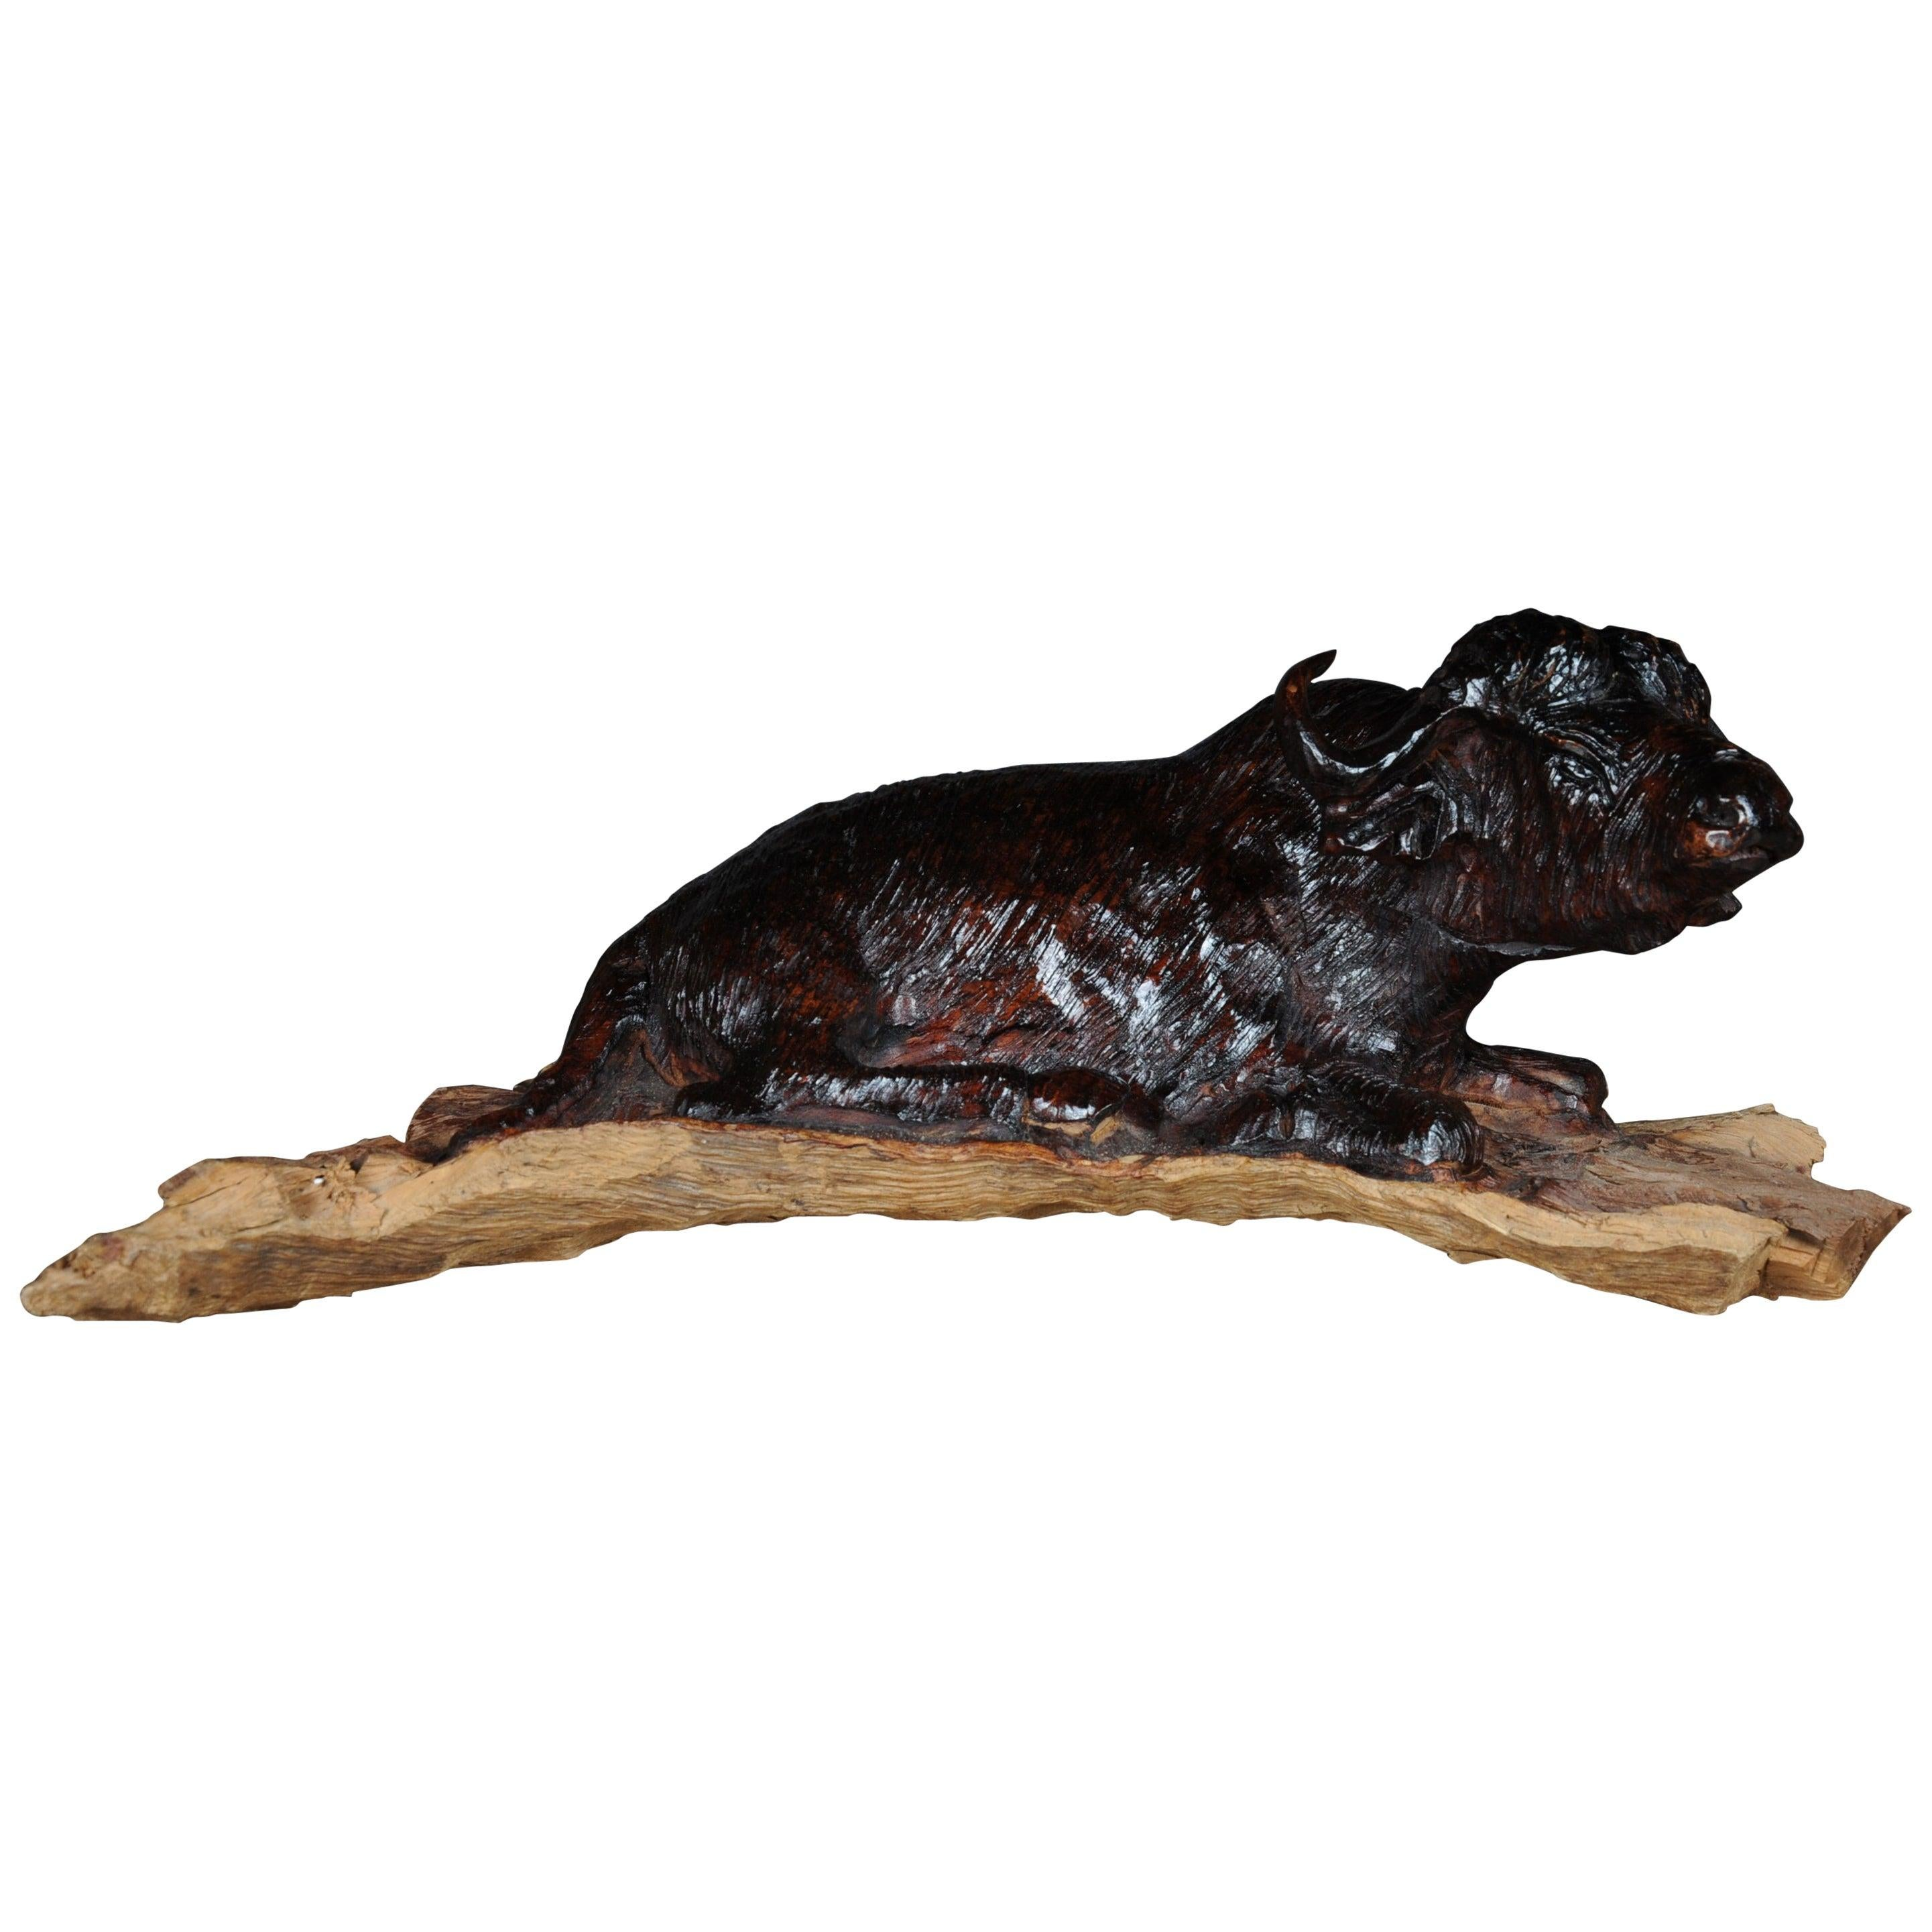 Unique Hand Carved Animal Sculpture Bison Made of Solid Wood